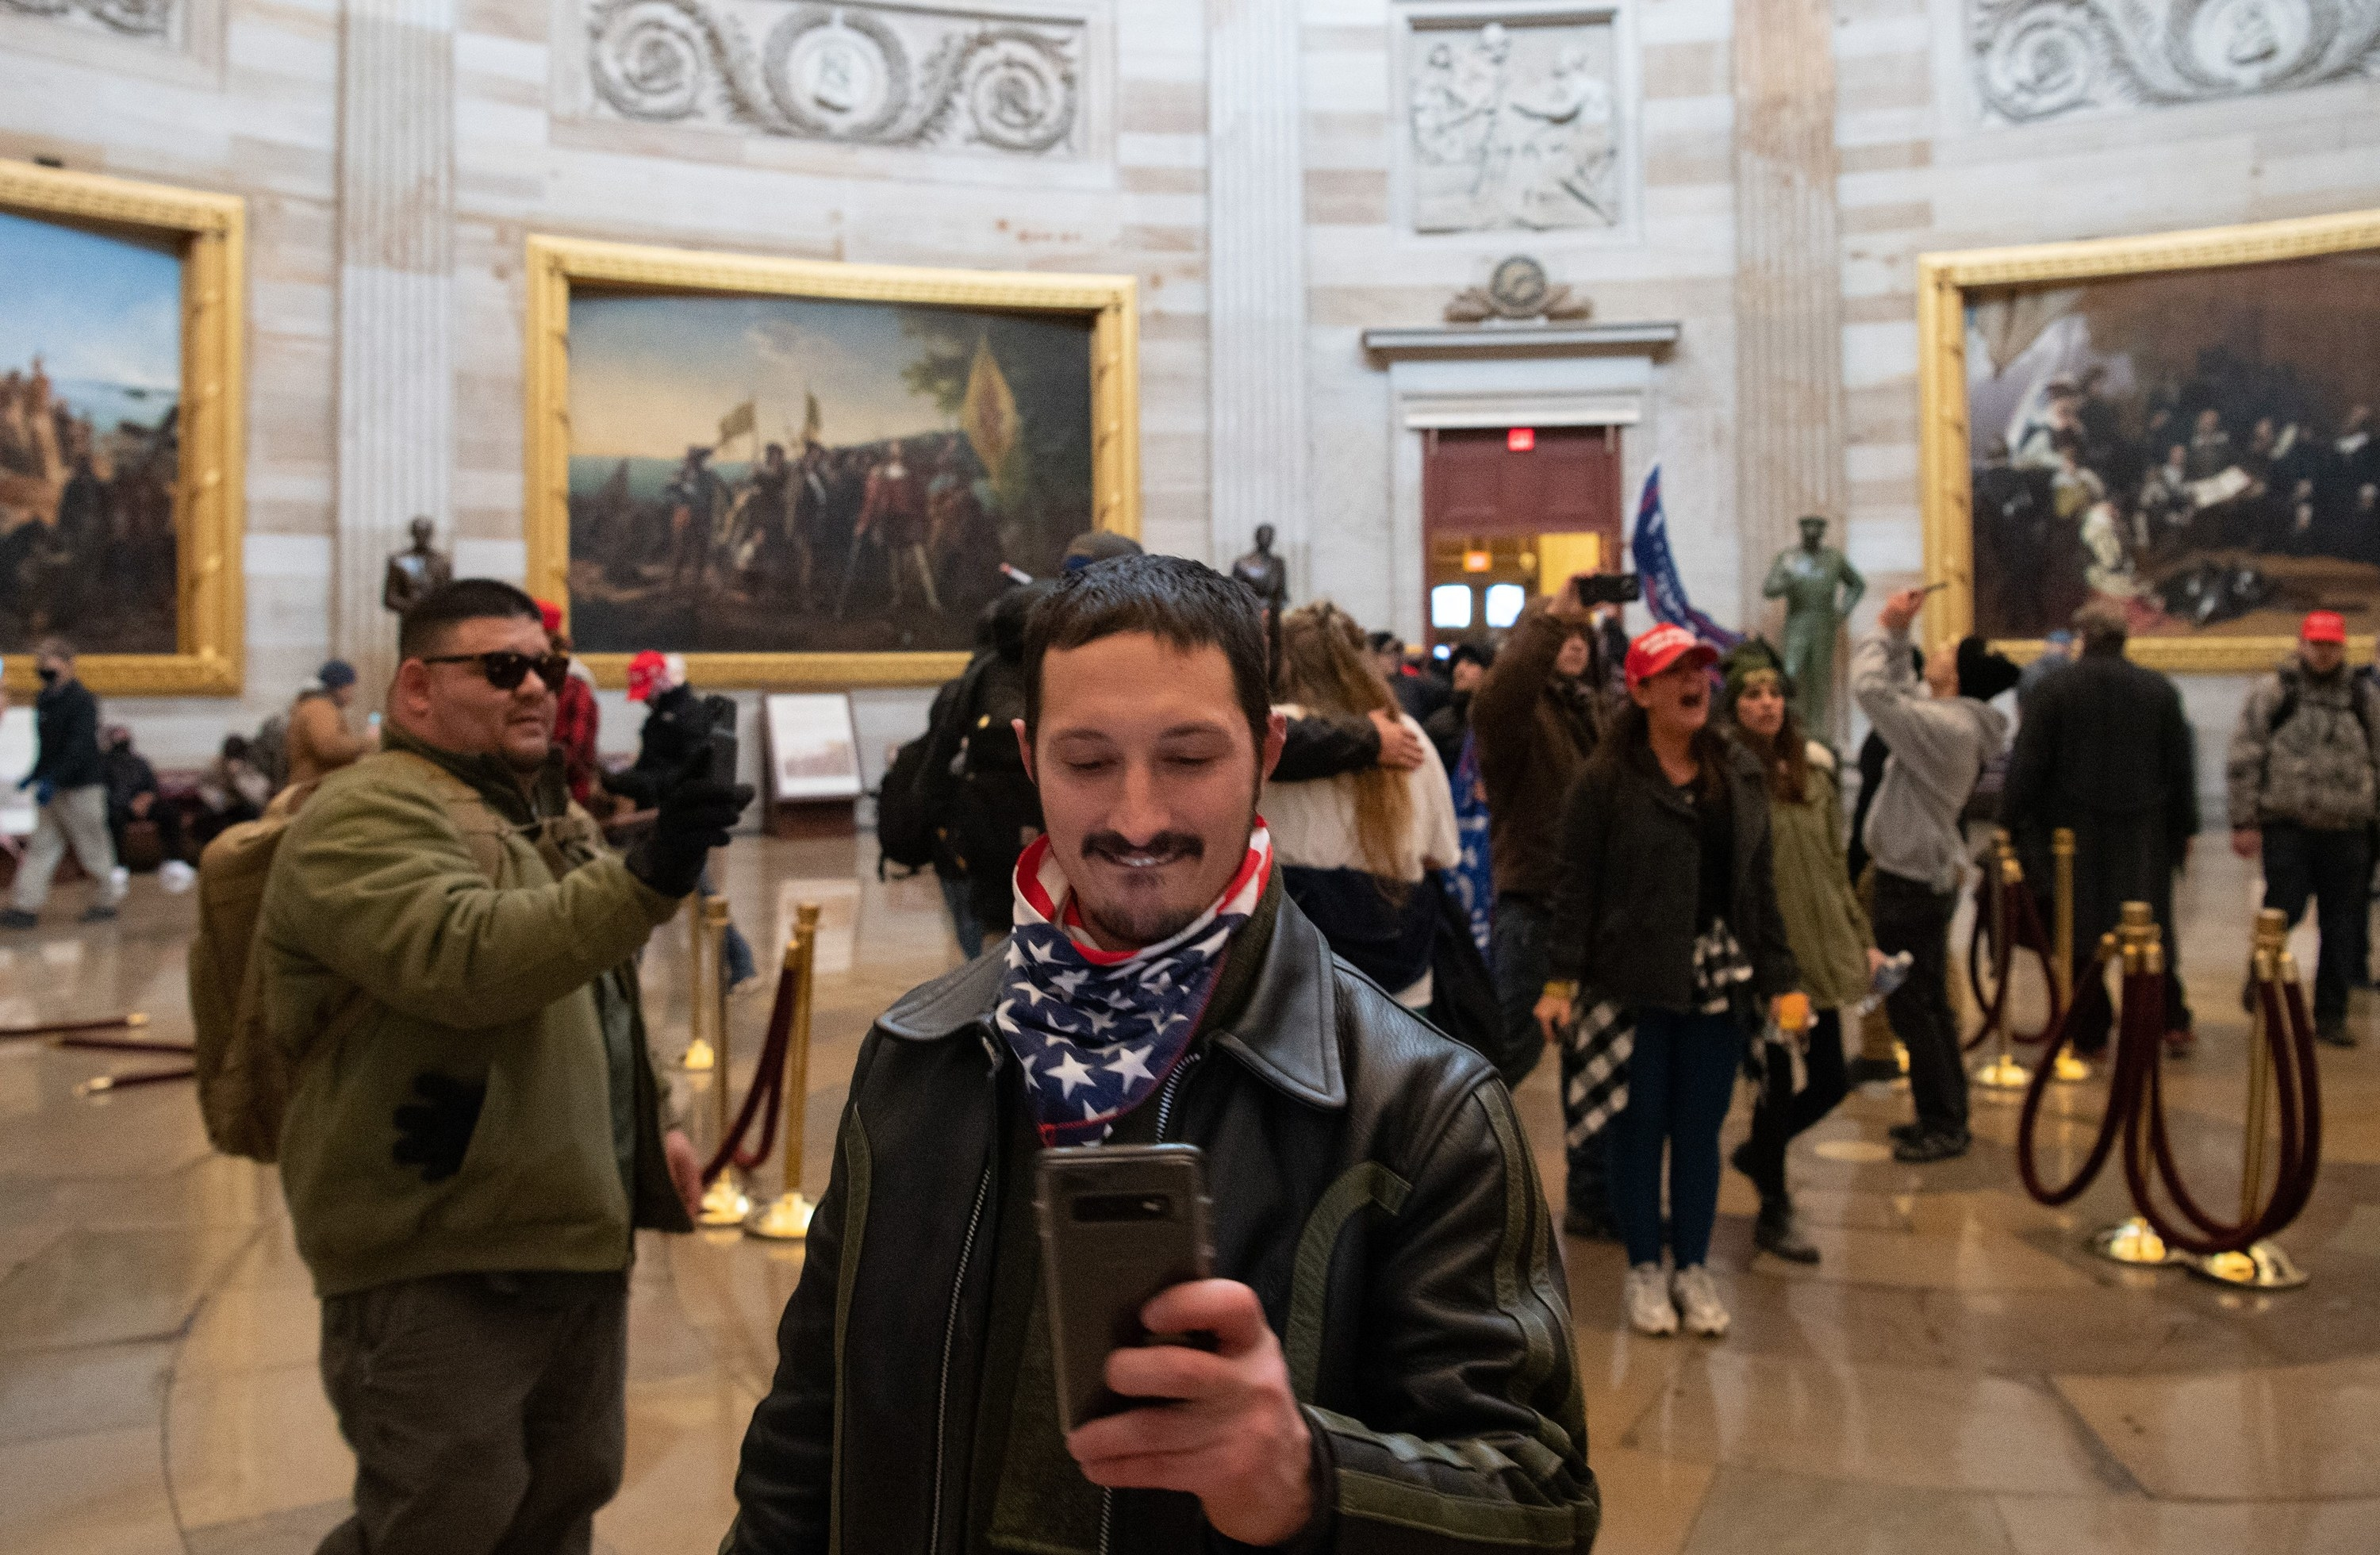 A Trump supporter taking a picture of the photo's photographer in the Capitol Rotunda